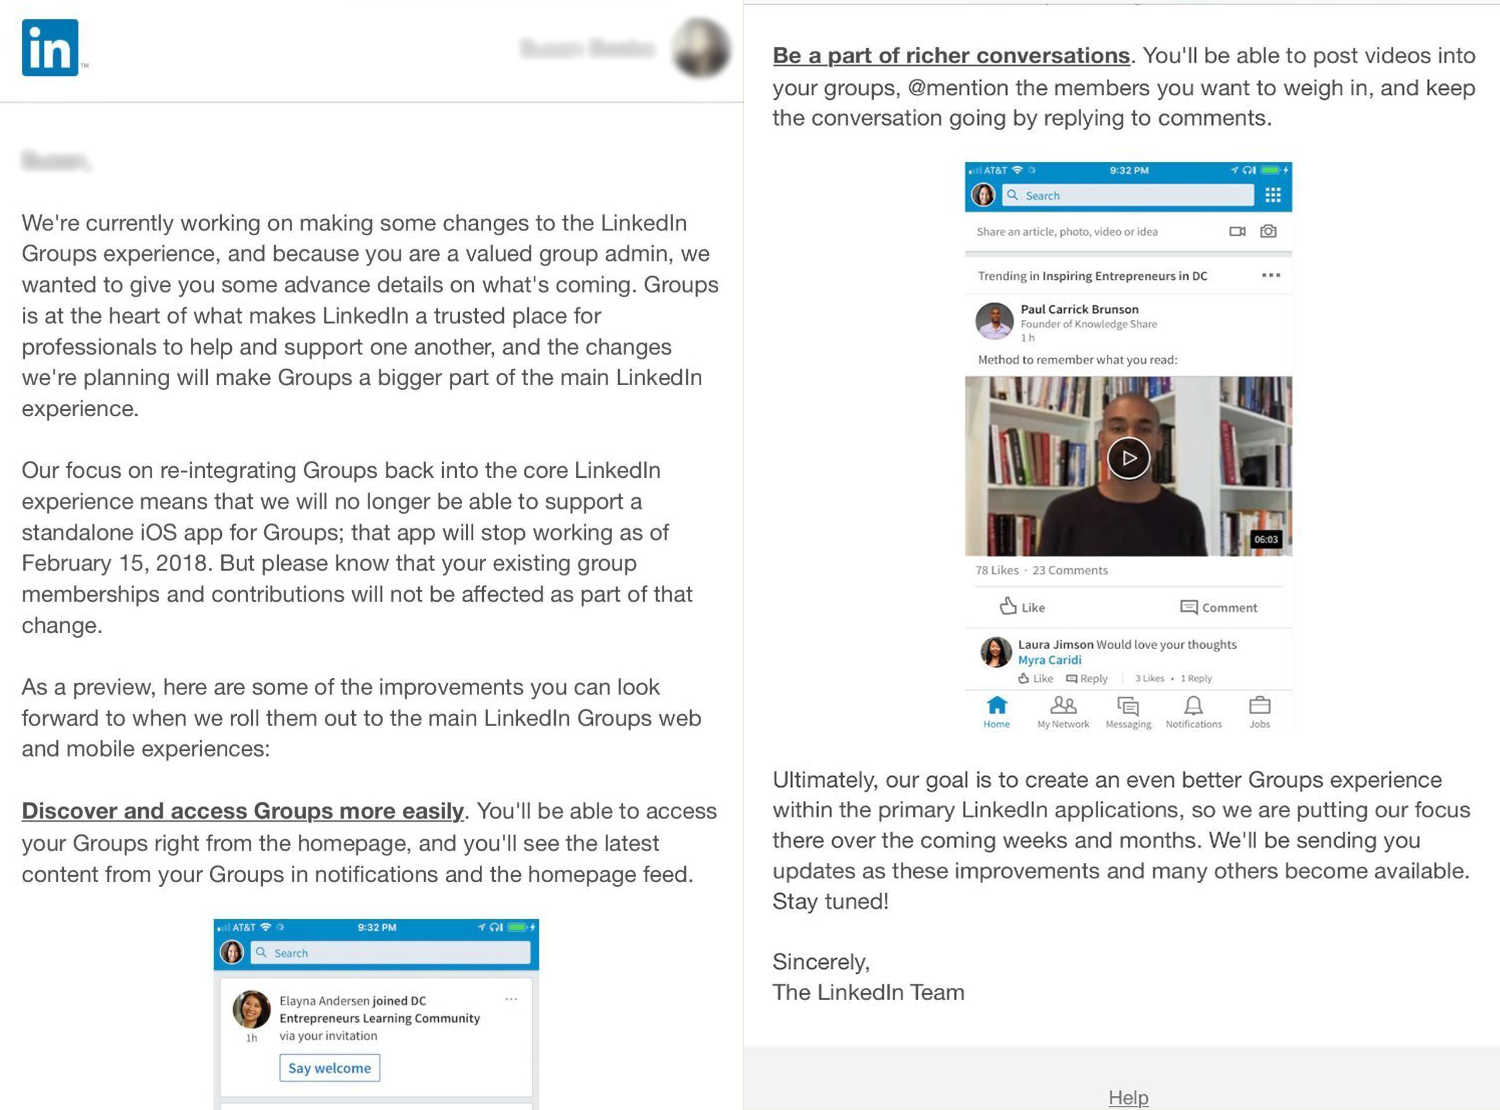 LinkedIn To Place Larger Focus on Groups, Shutters Standalone App